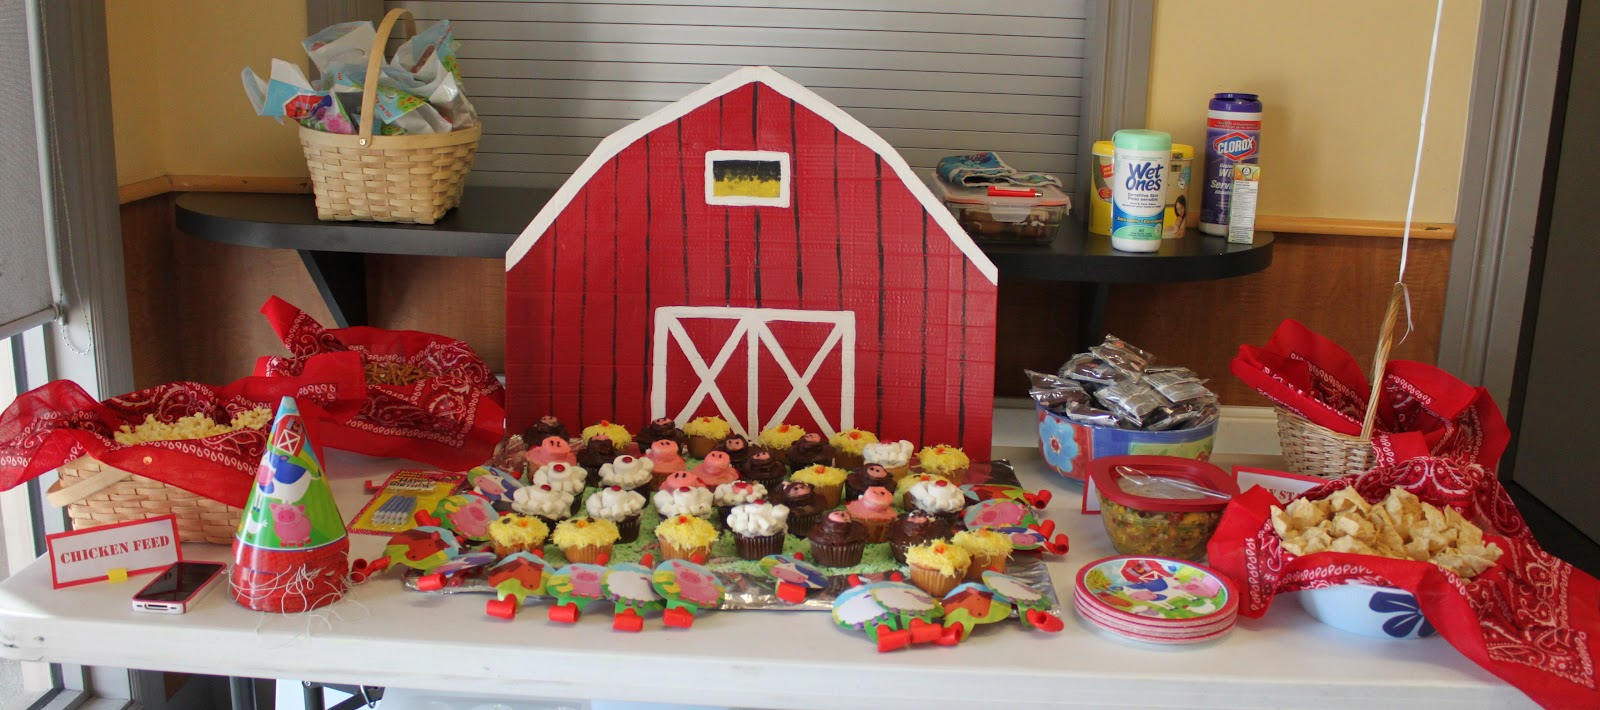 B's 1st Birthday Barnyard Bash!